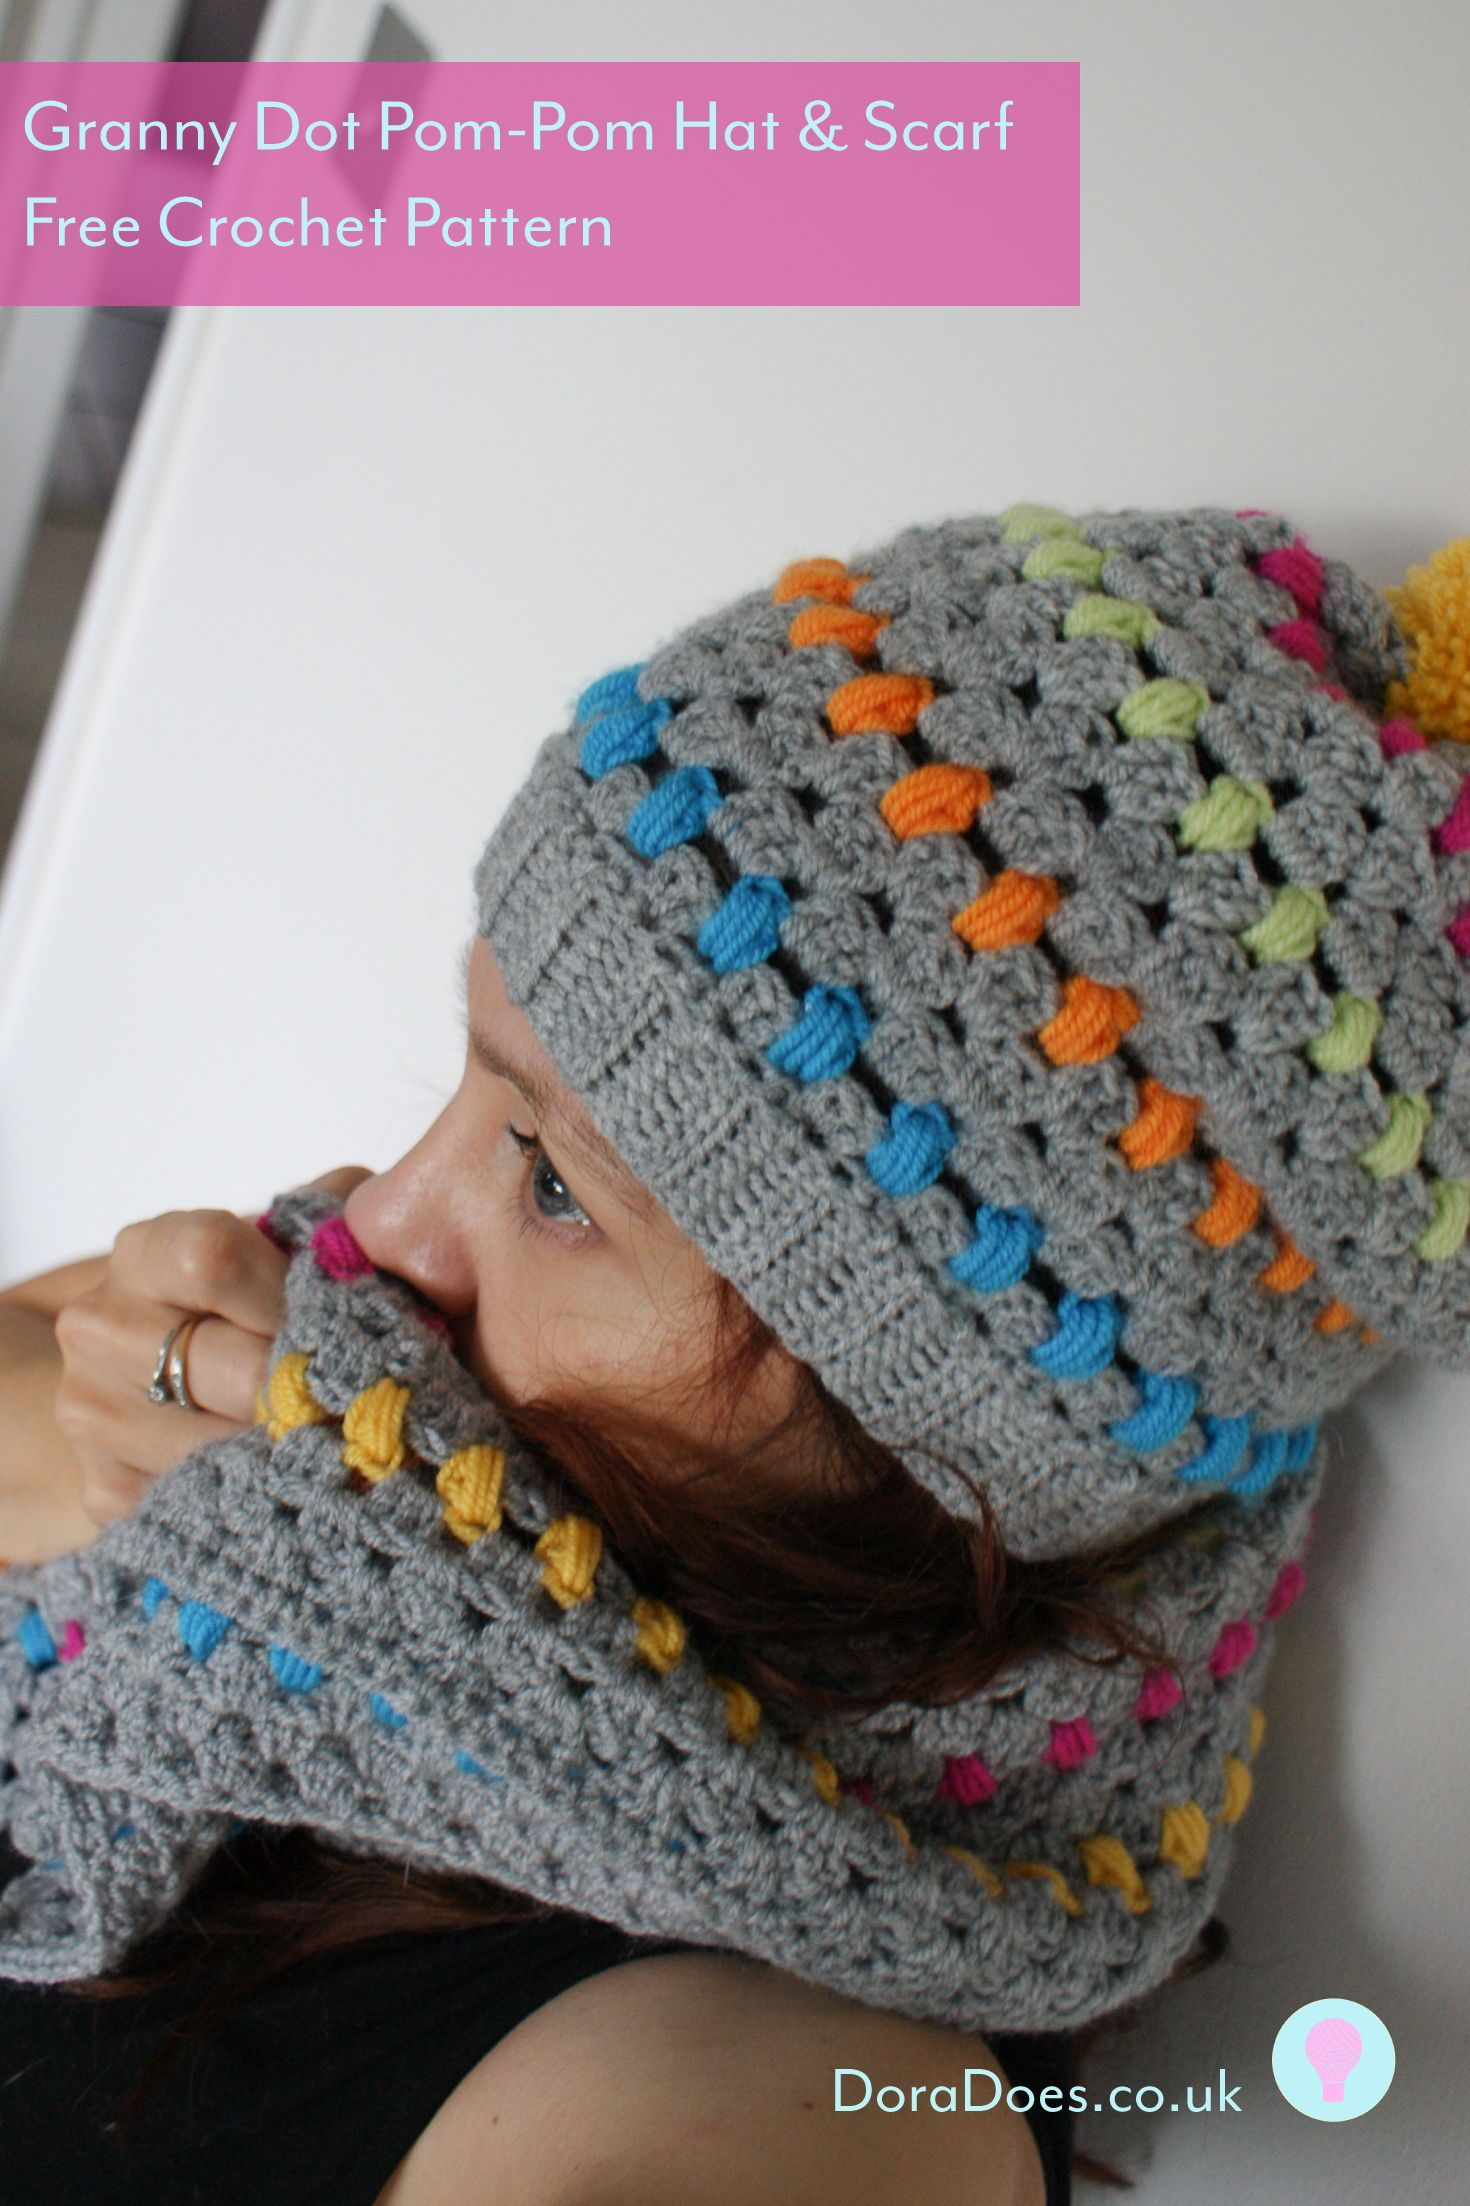 675fcc0e767 The Granny Dot crochet hat and scarf set is a fun